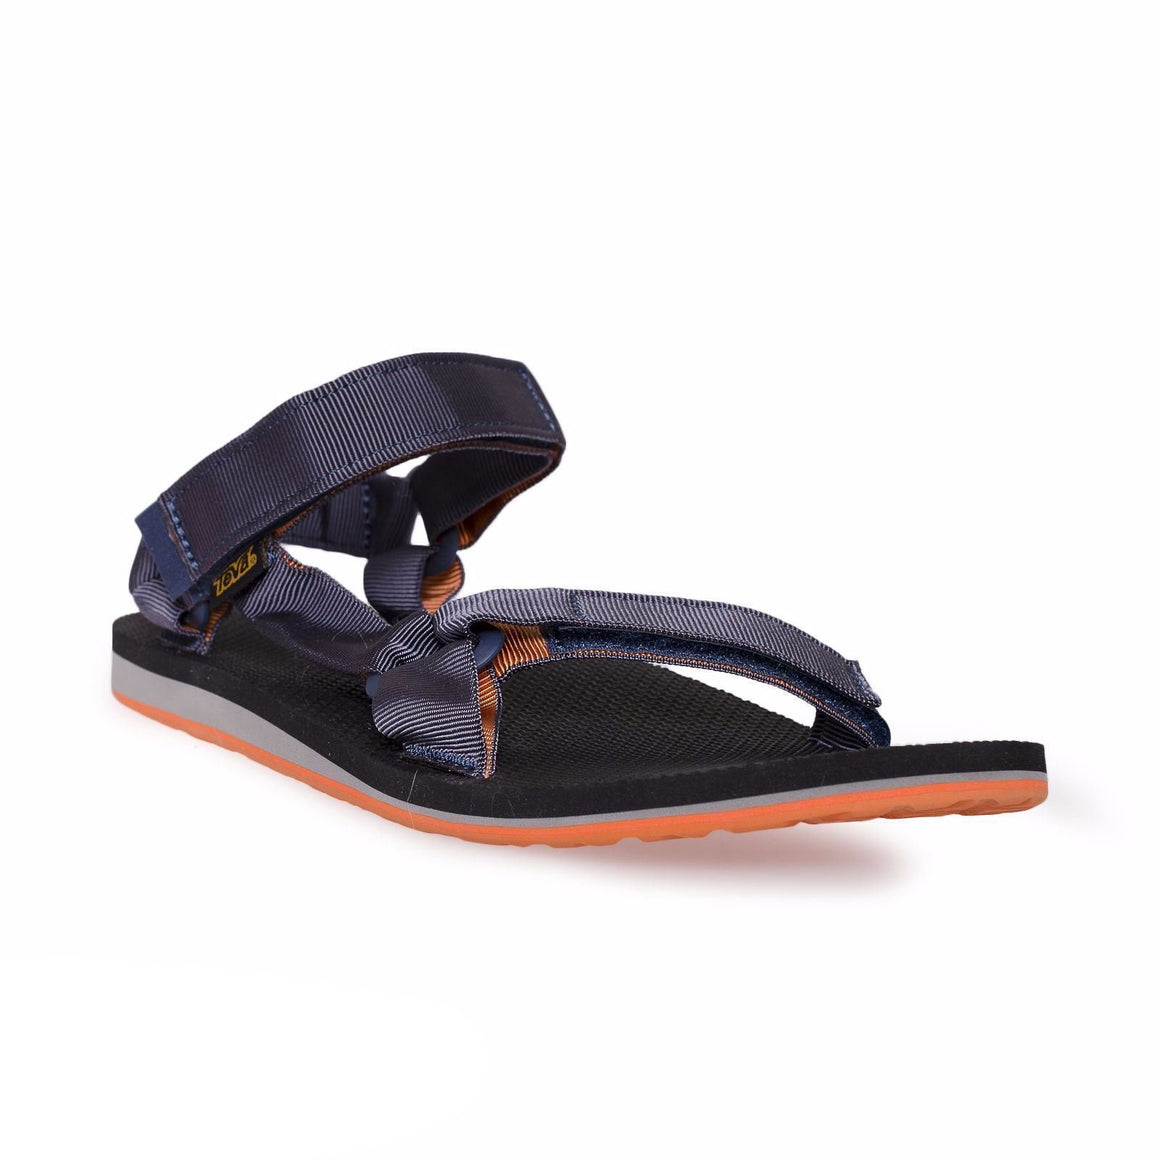 Teva Original Universal Blue / Orange Sandals